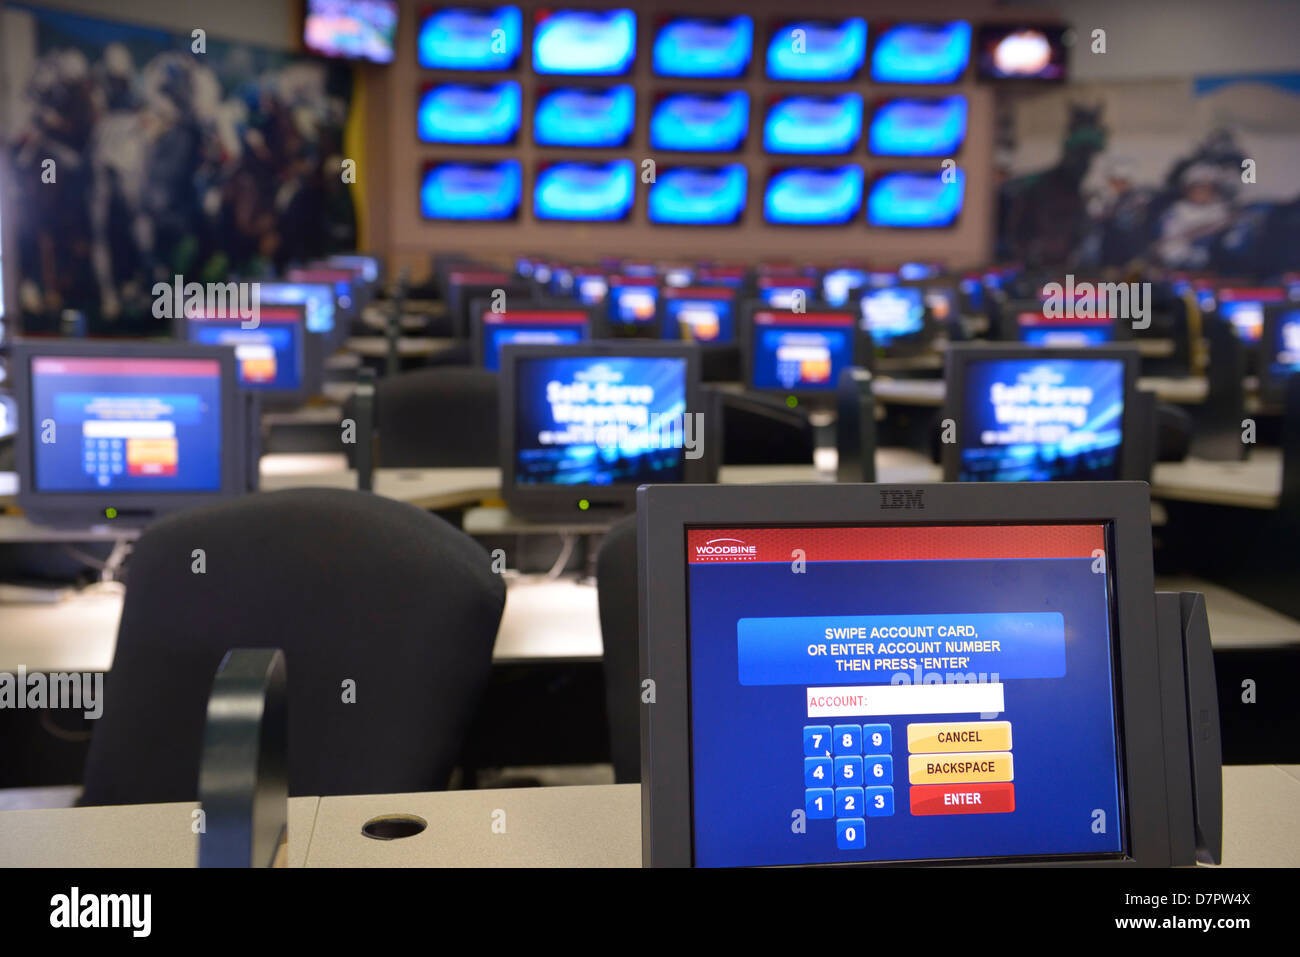 Empty room of computer screens for self-serve wager betting on horse races at Woodbine Racetrack Toronto - Stock Image